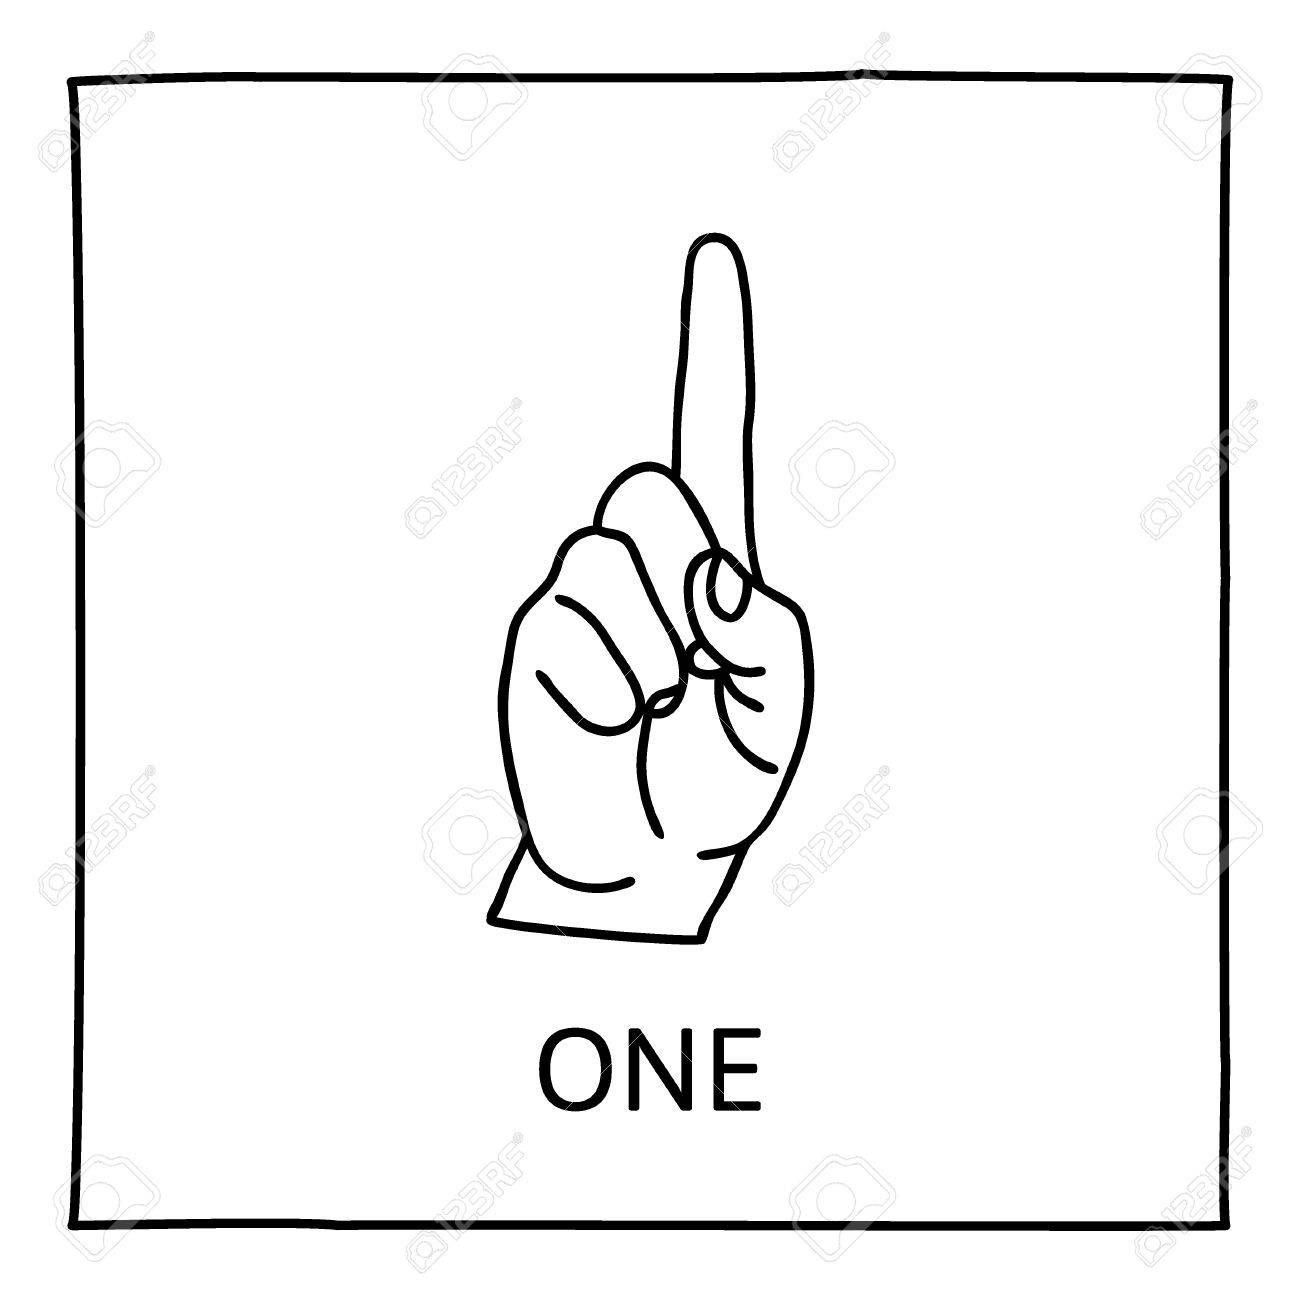 doodle palm icon counting hands showing one finger graphic